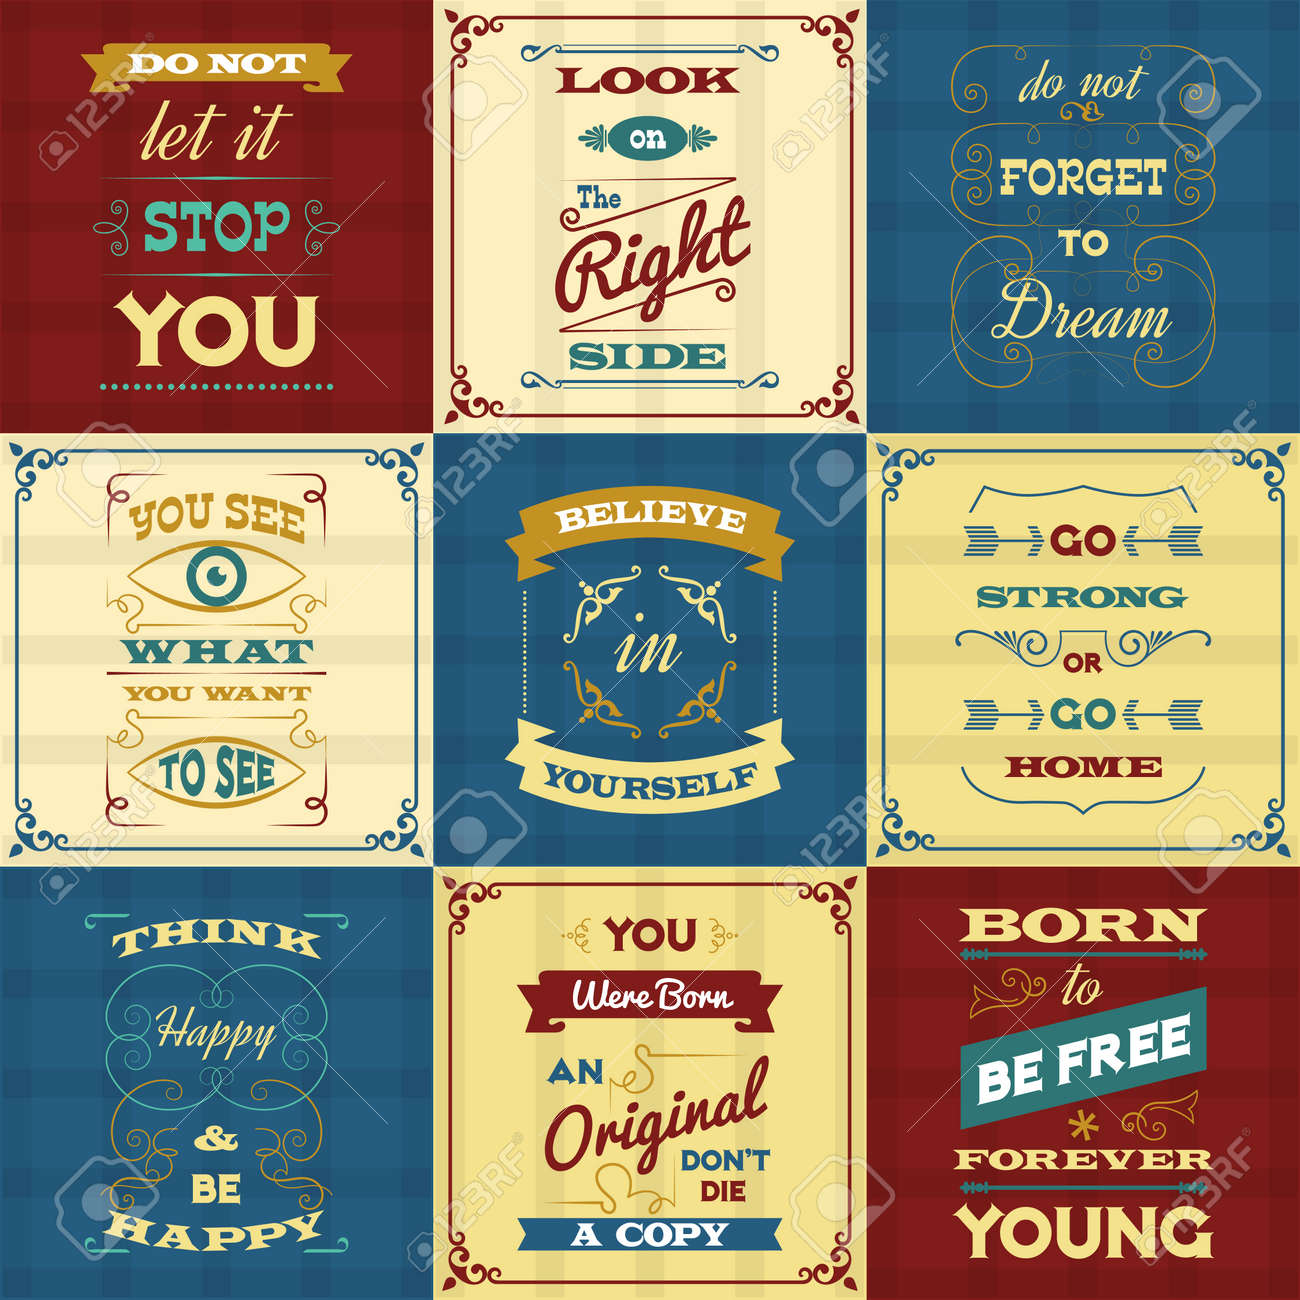 Slogan and motivational sayings typography mini posters set isolated vector illustration - 165626885